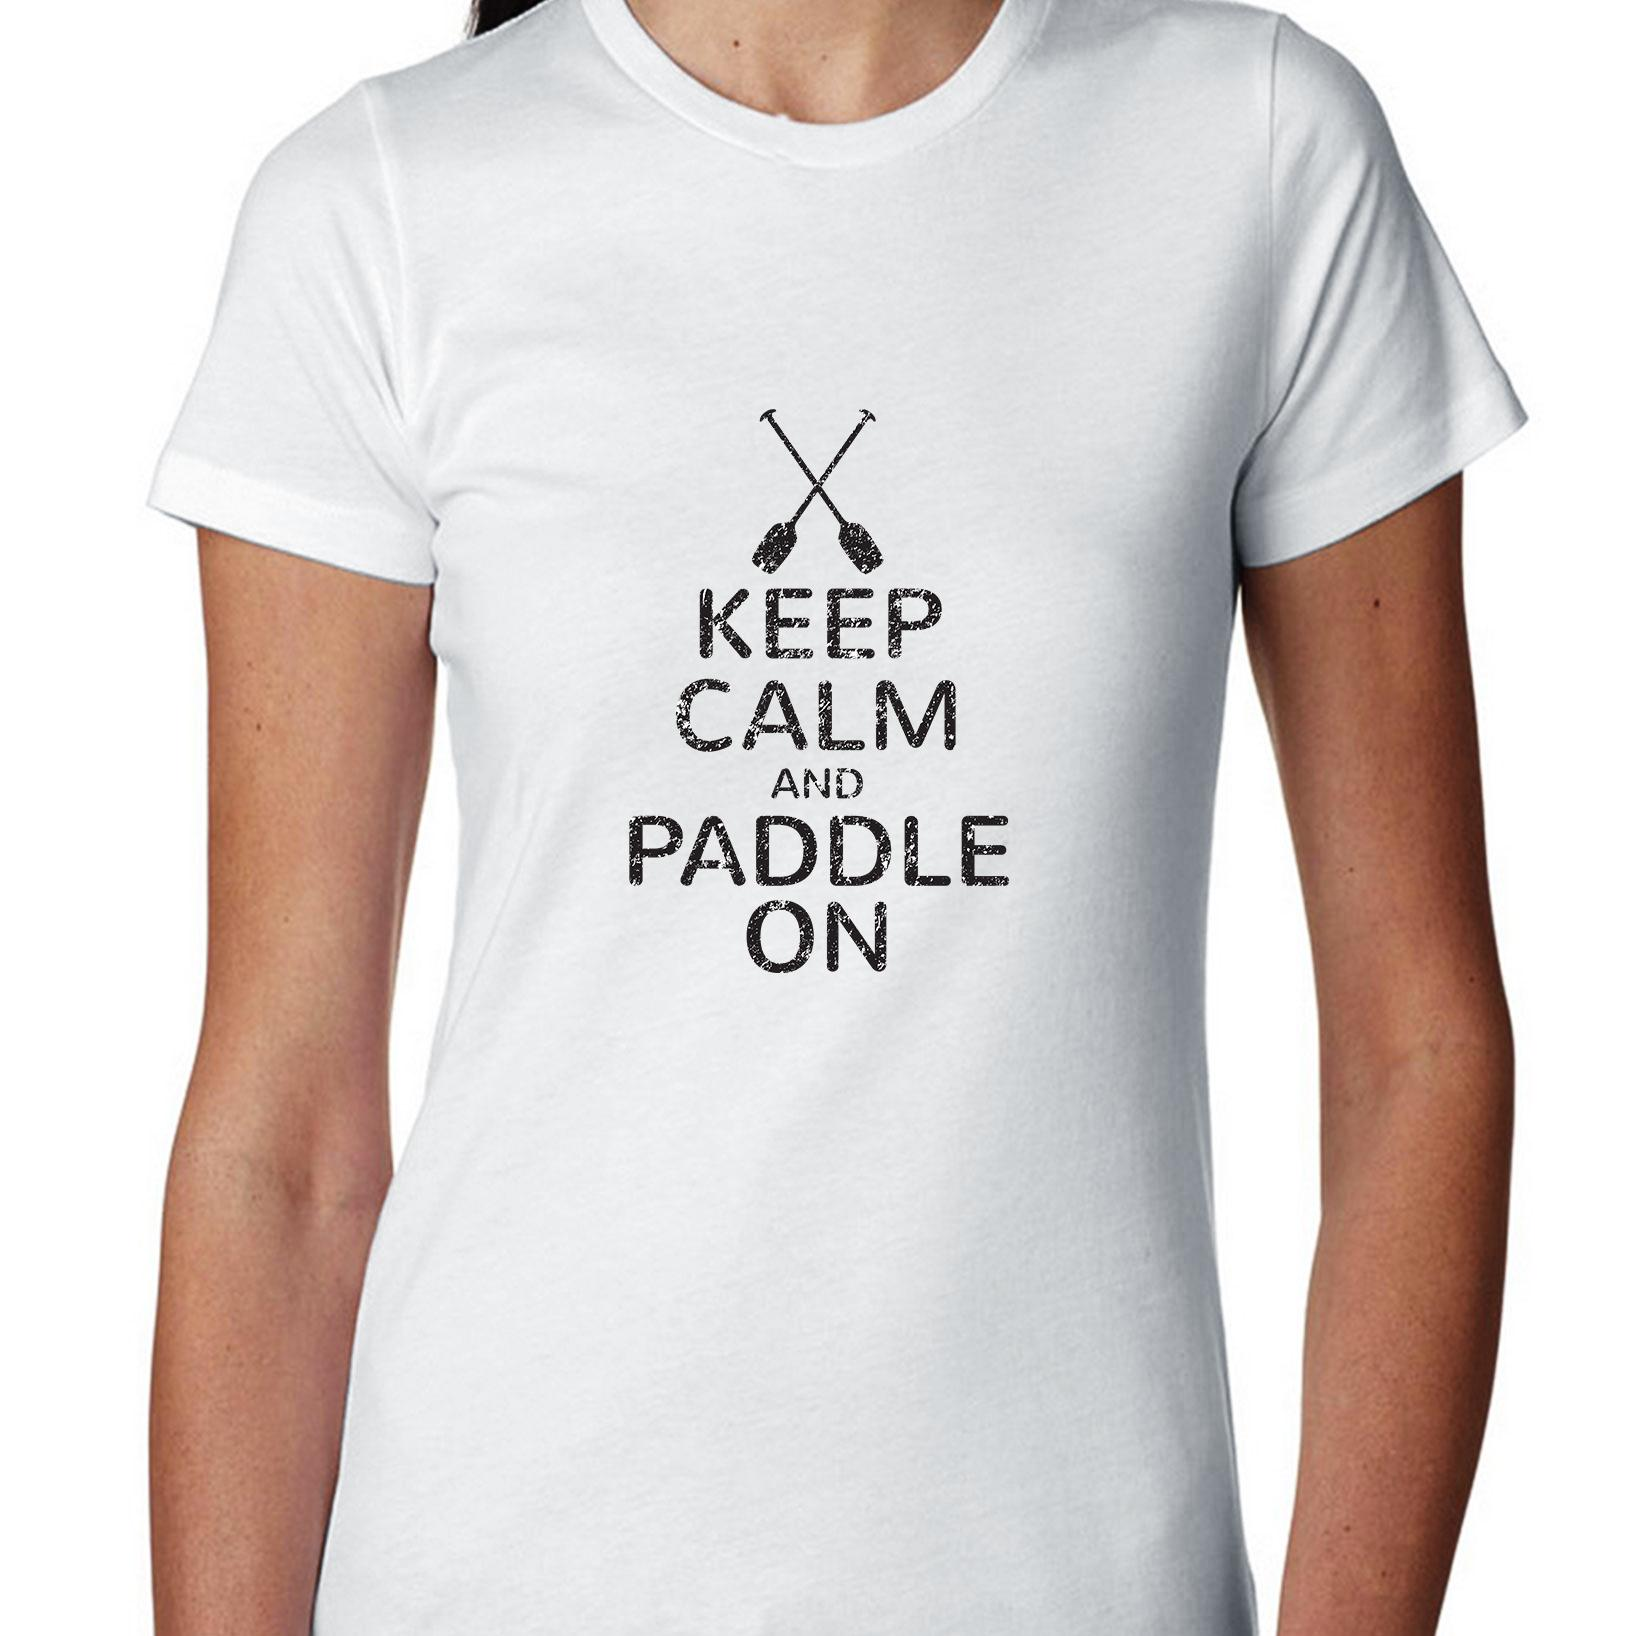 Keep Calm And Paddle On Rowing Kayak Graphic Women's Cotton T-Shirt